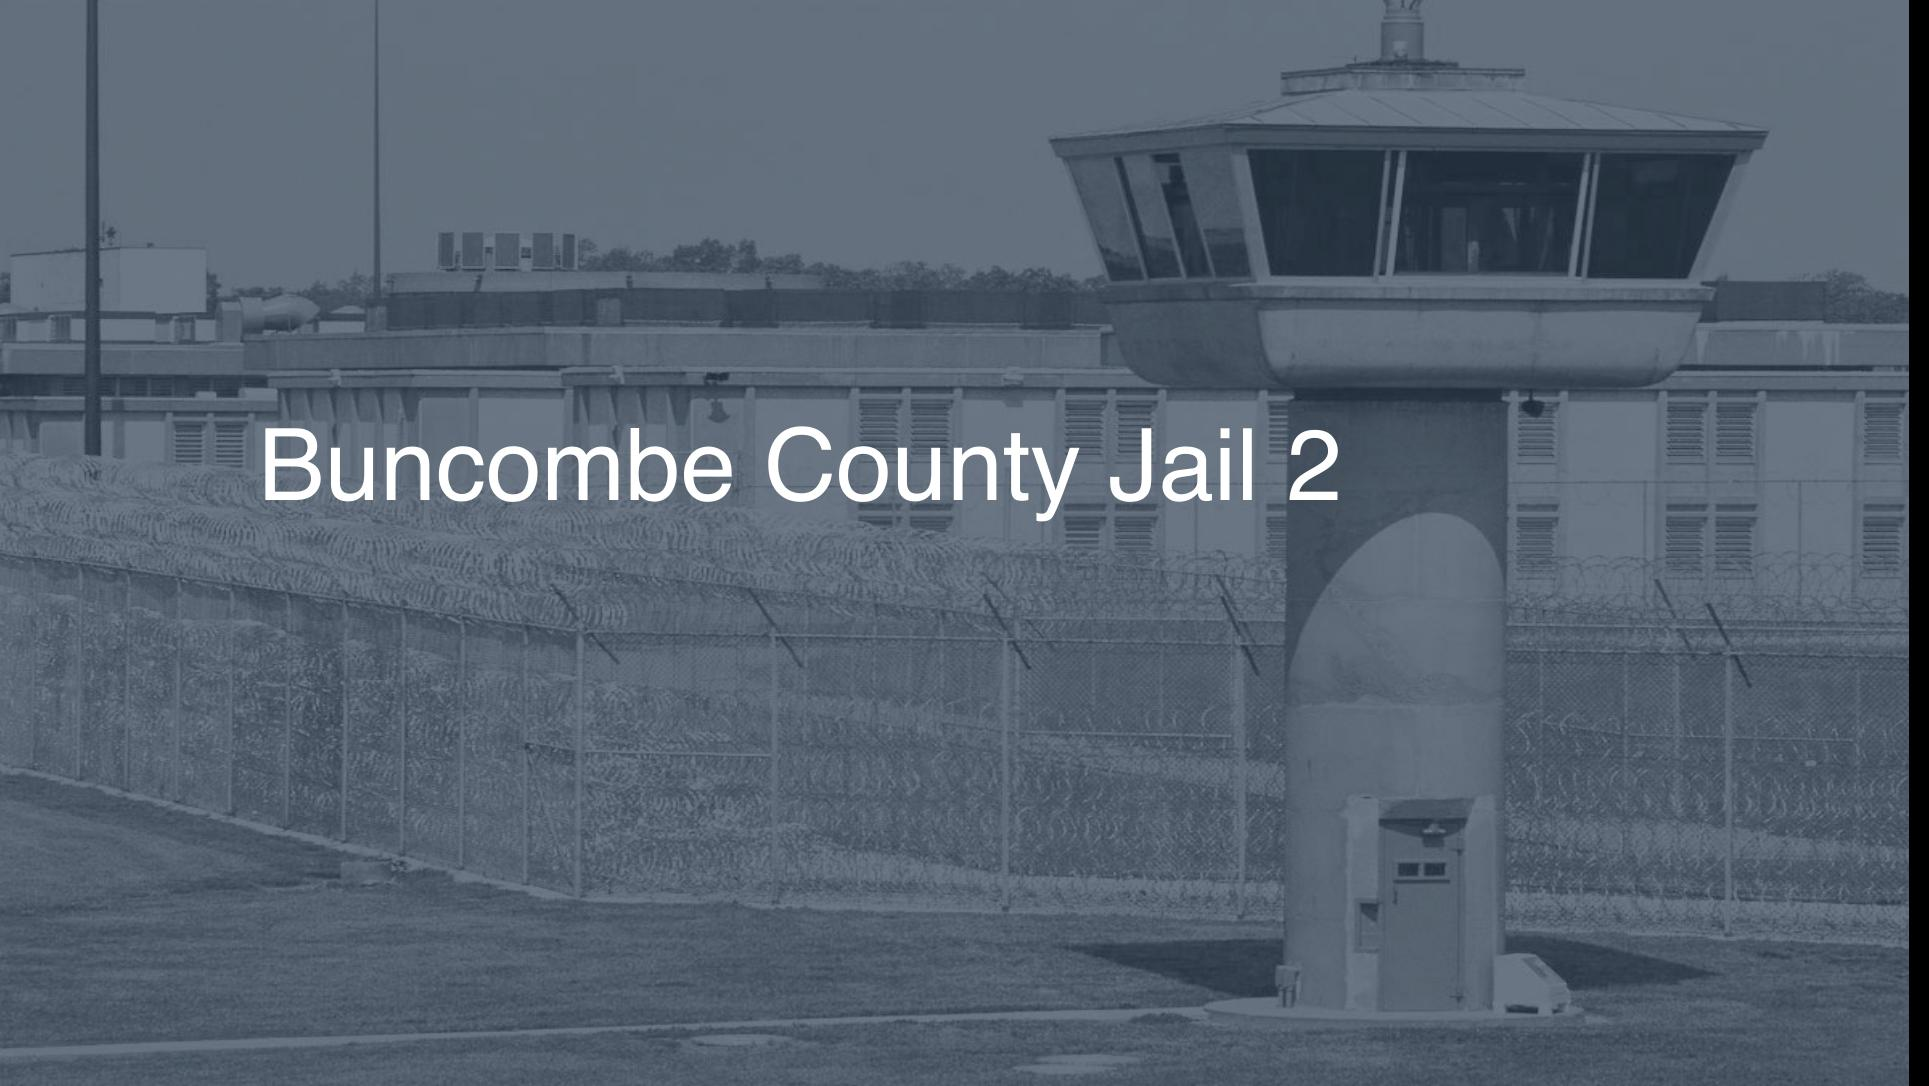 Buncombe County Jail correctional facility picture